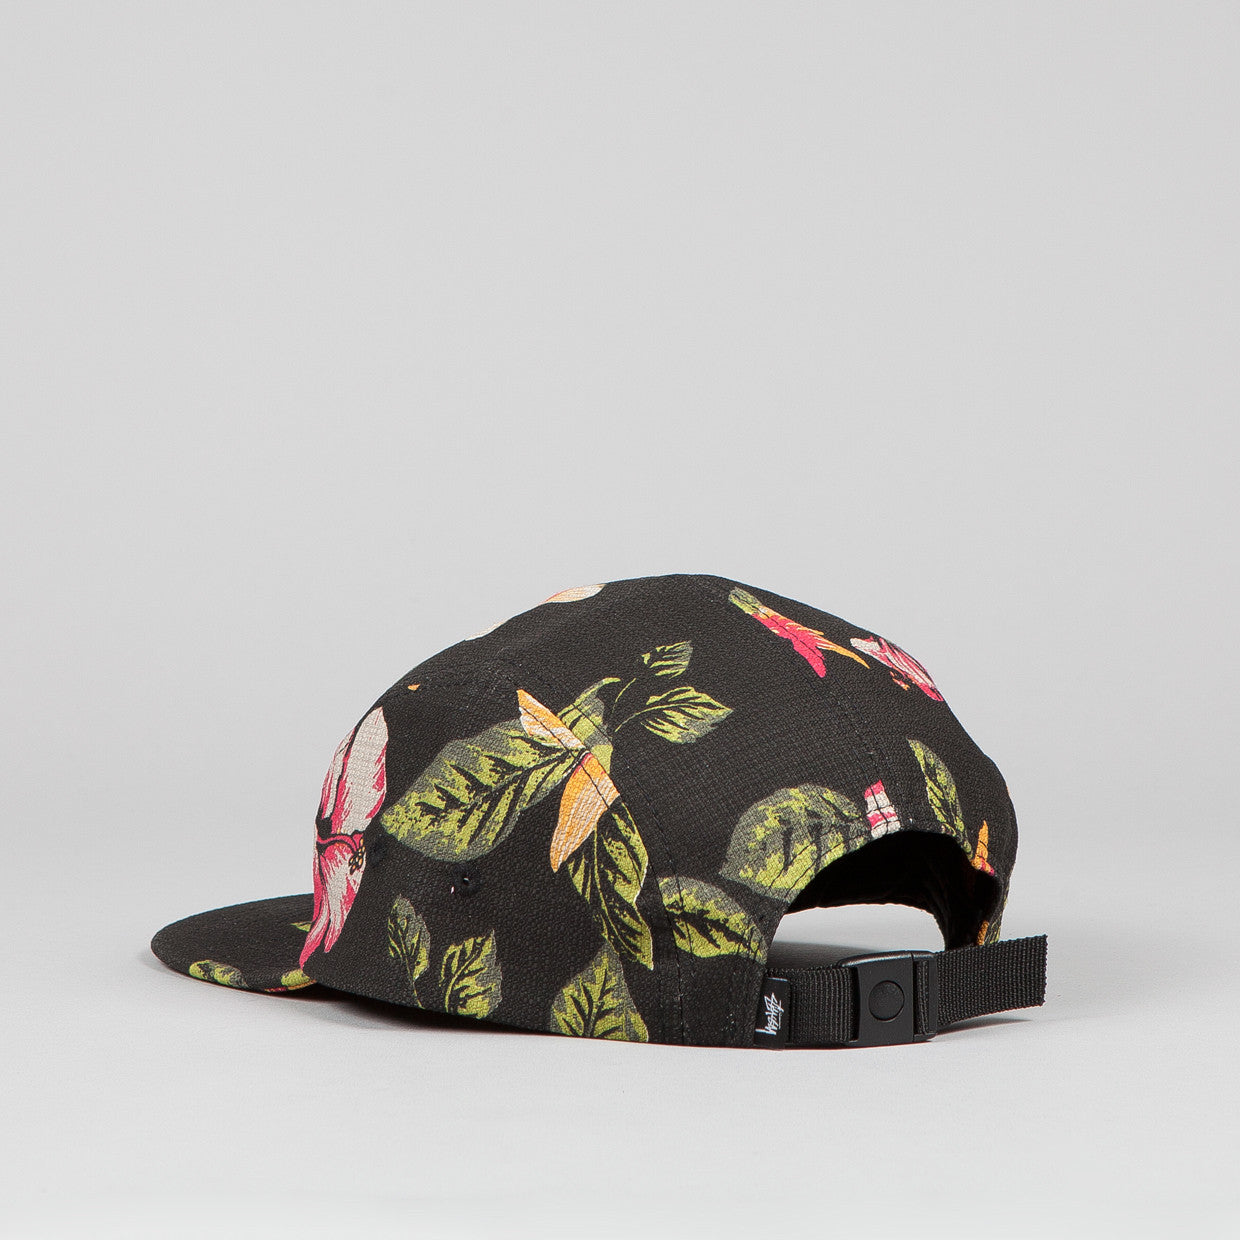 Stussy Vintage Flower Camp Cap Black